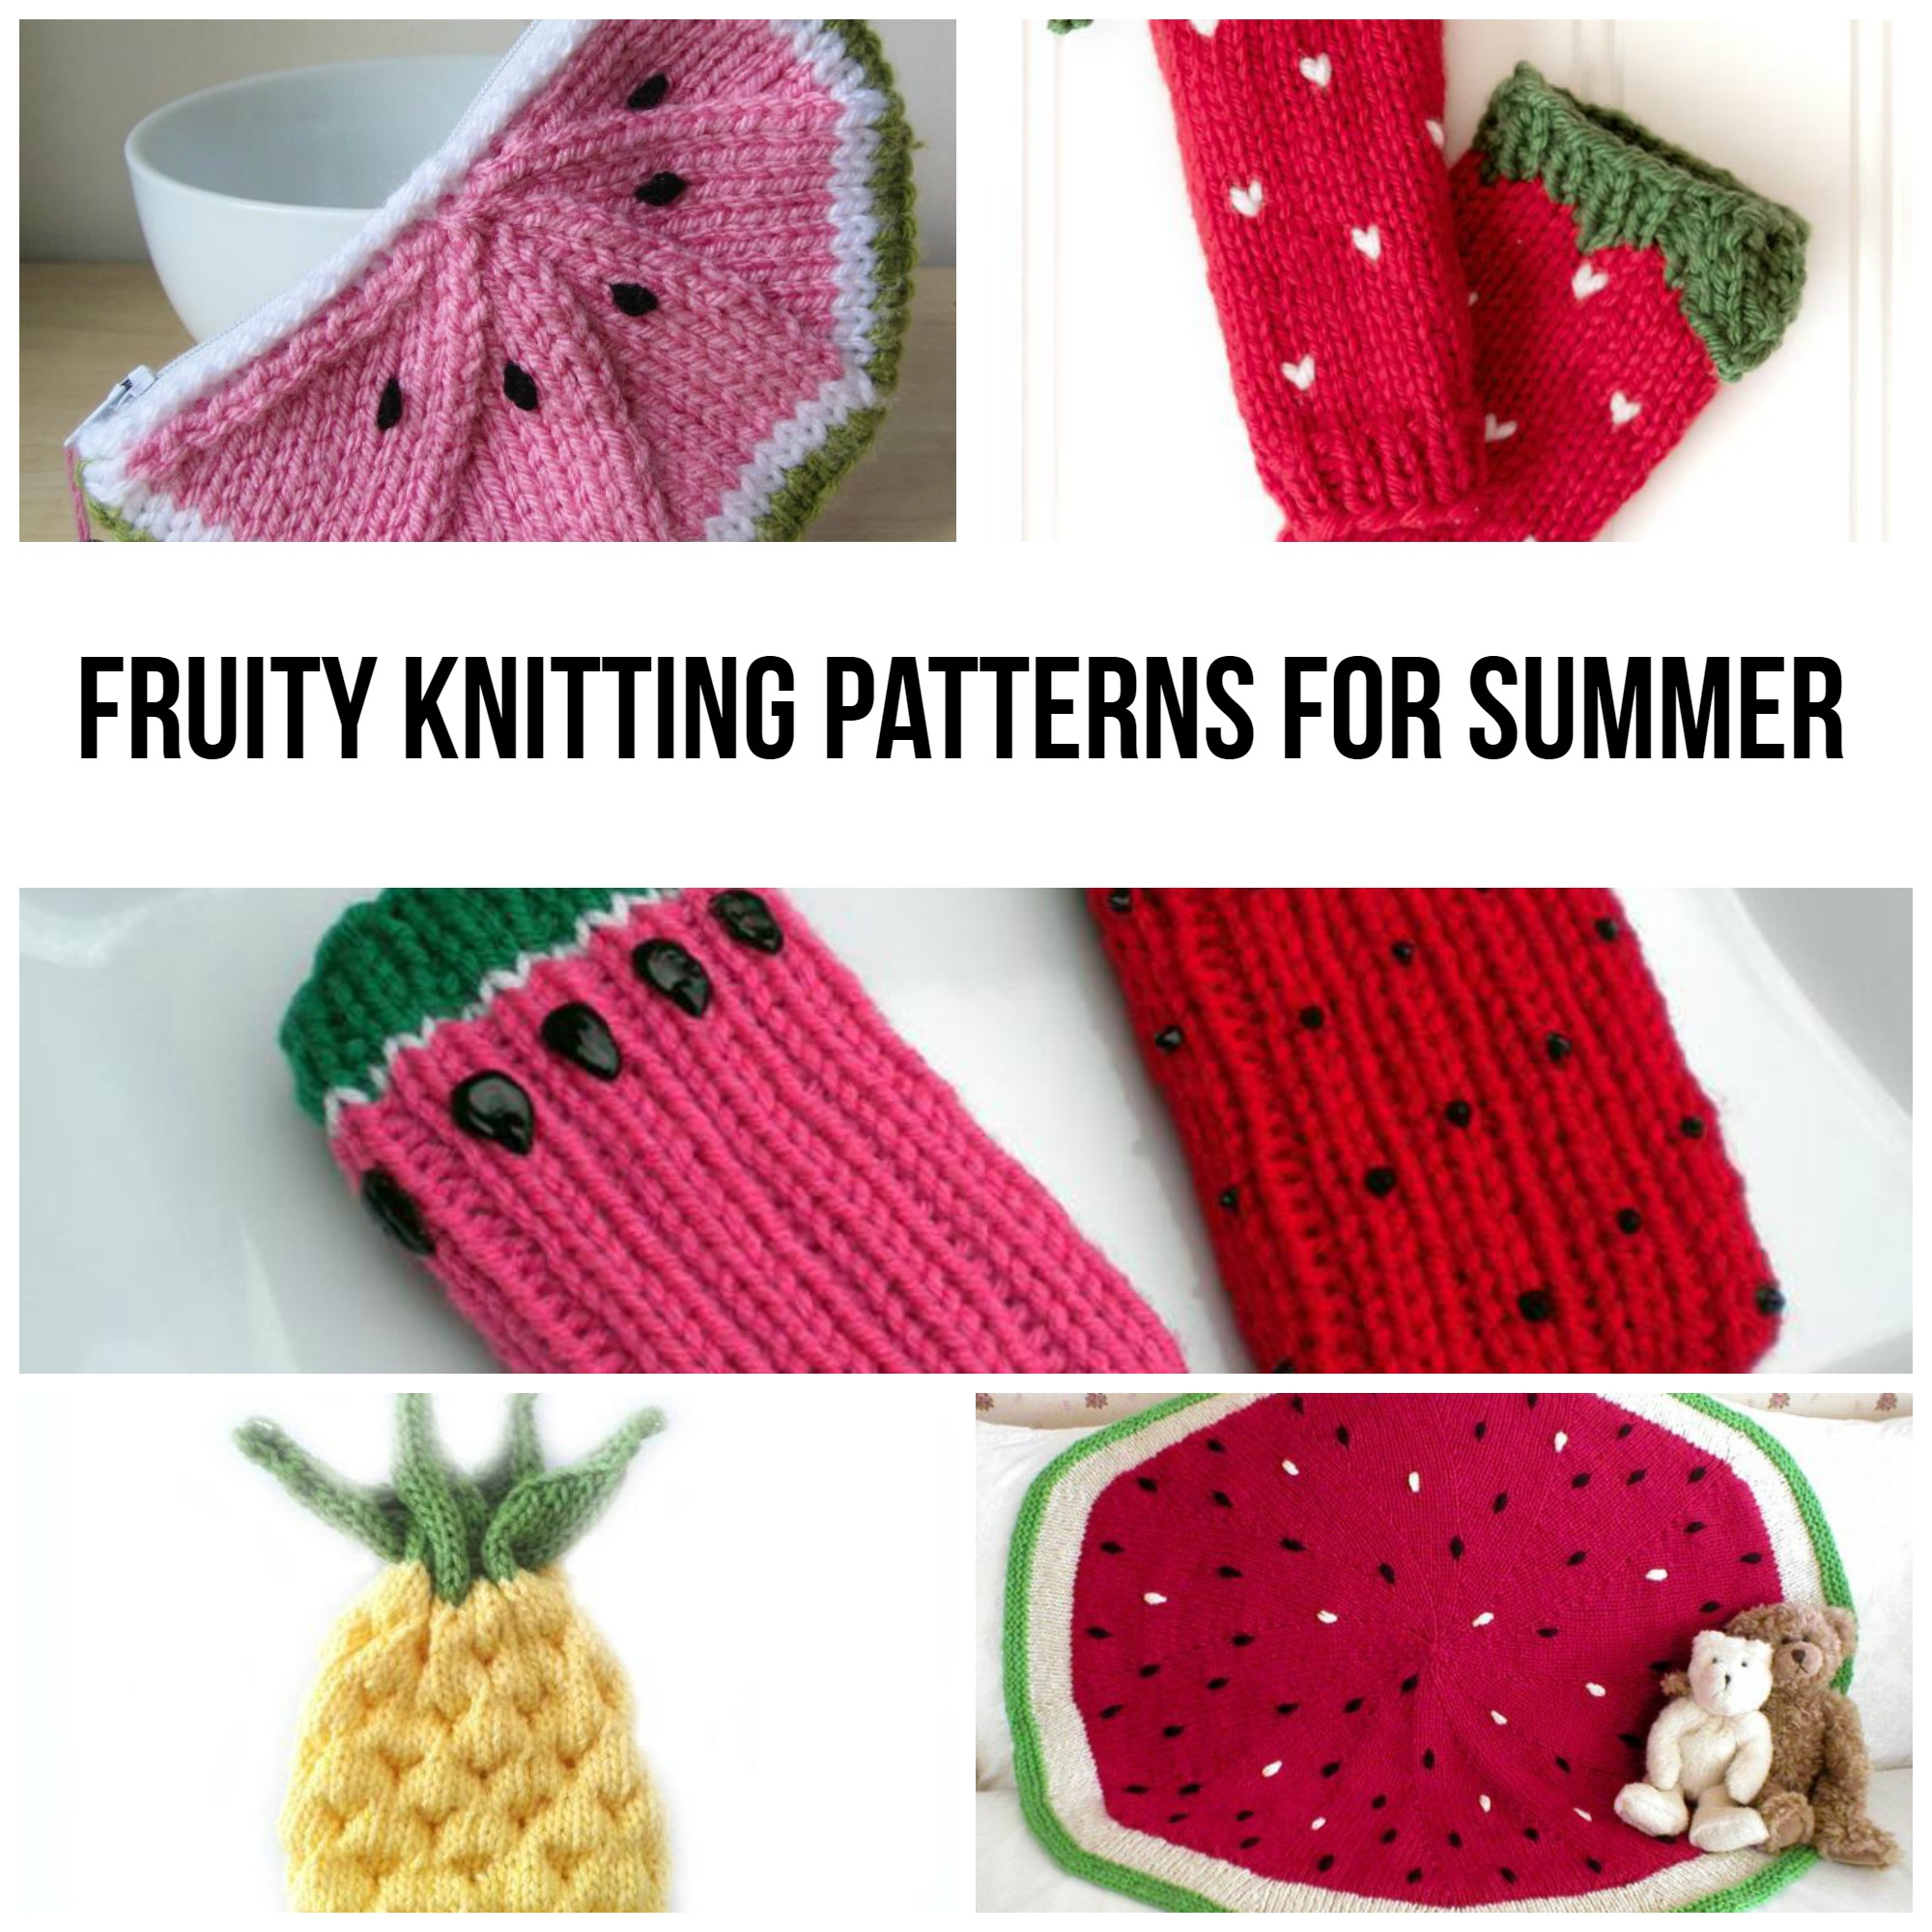 Collage of Fruit Knitting Patterns for Summer